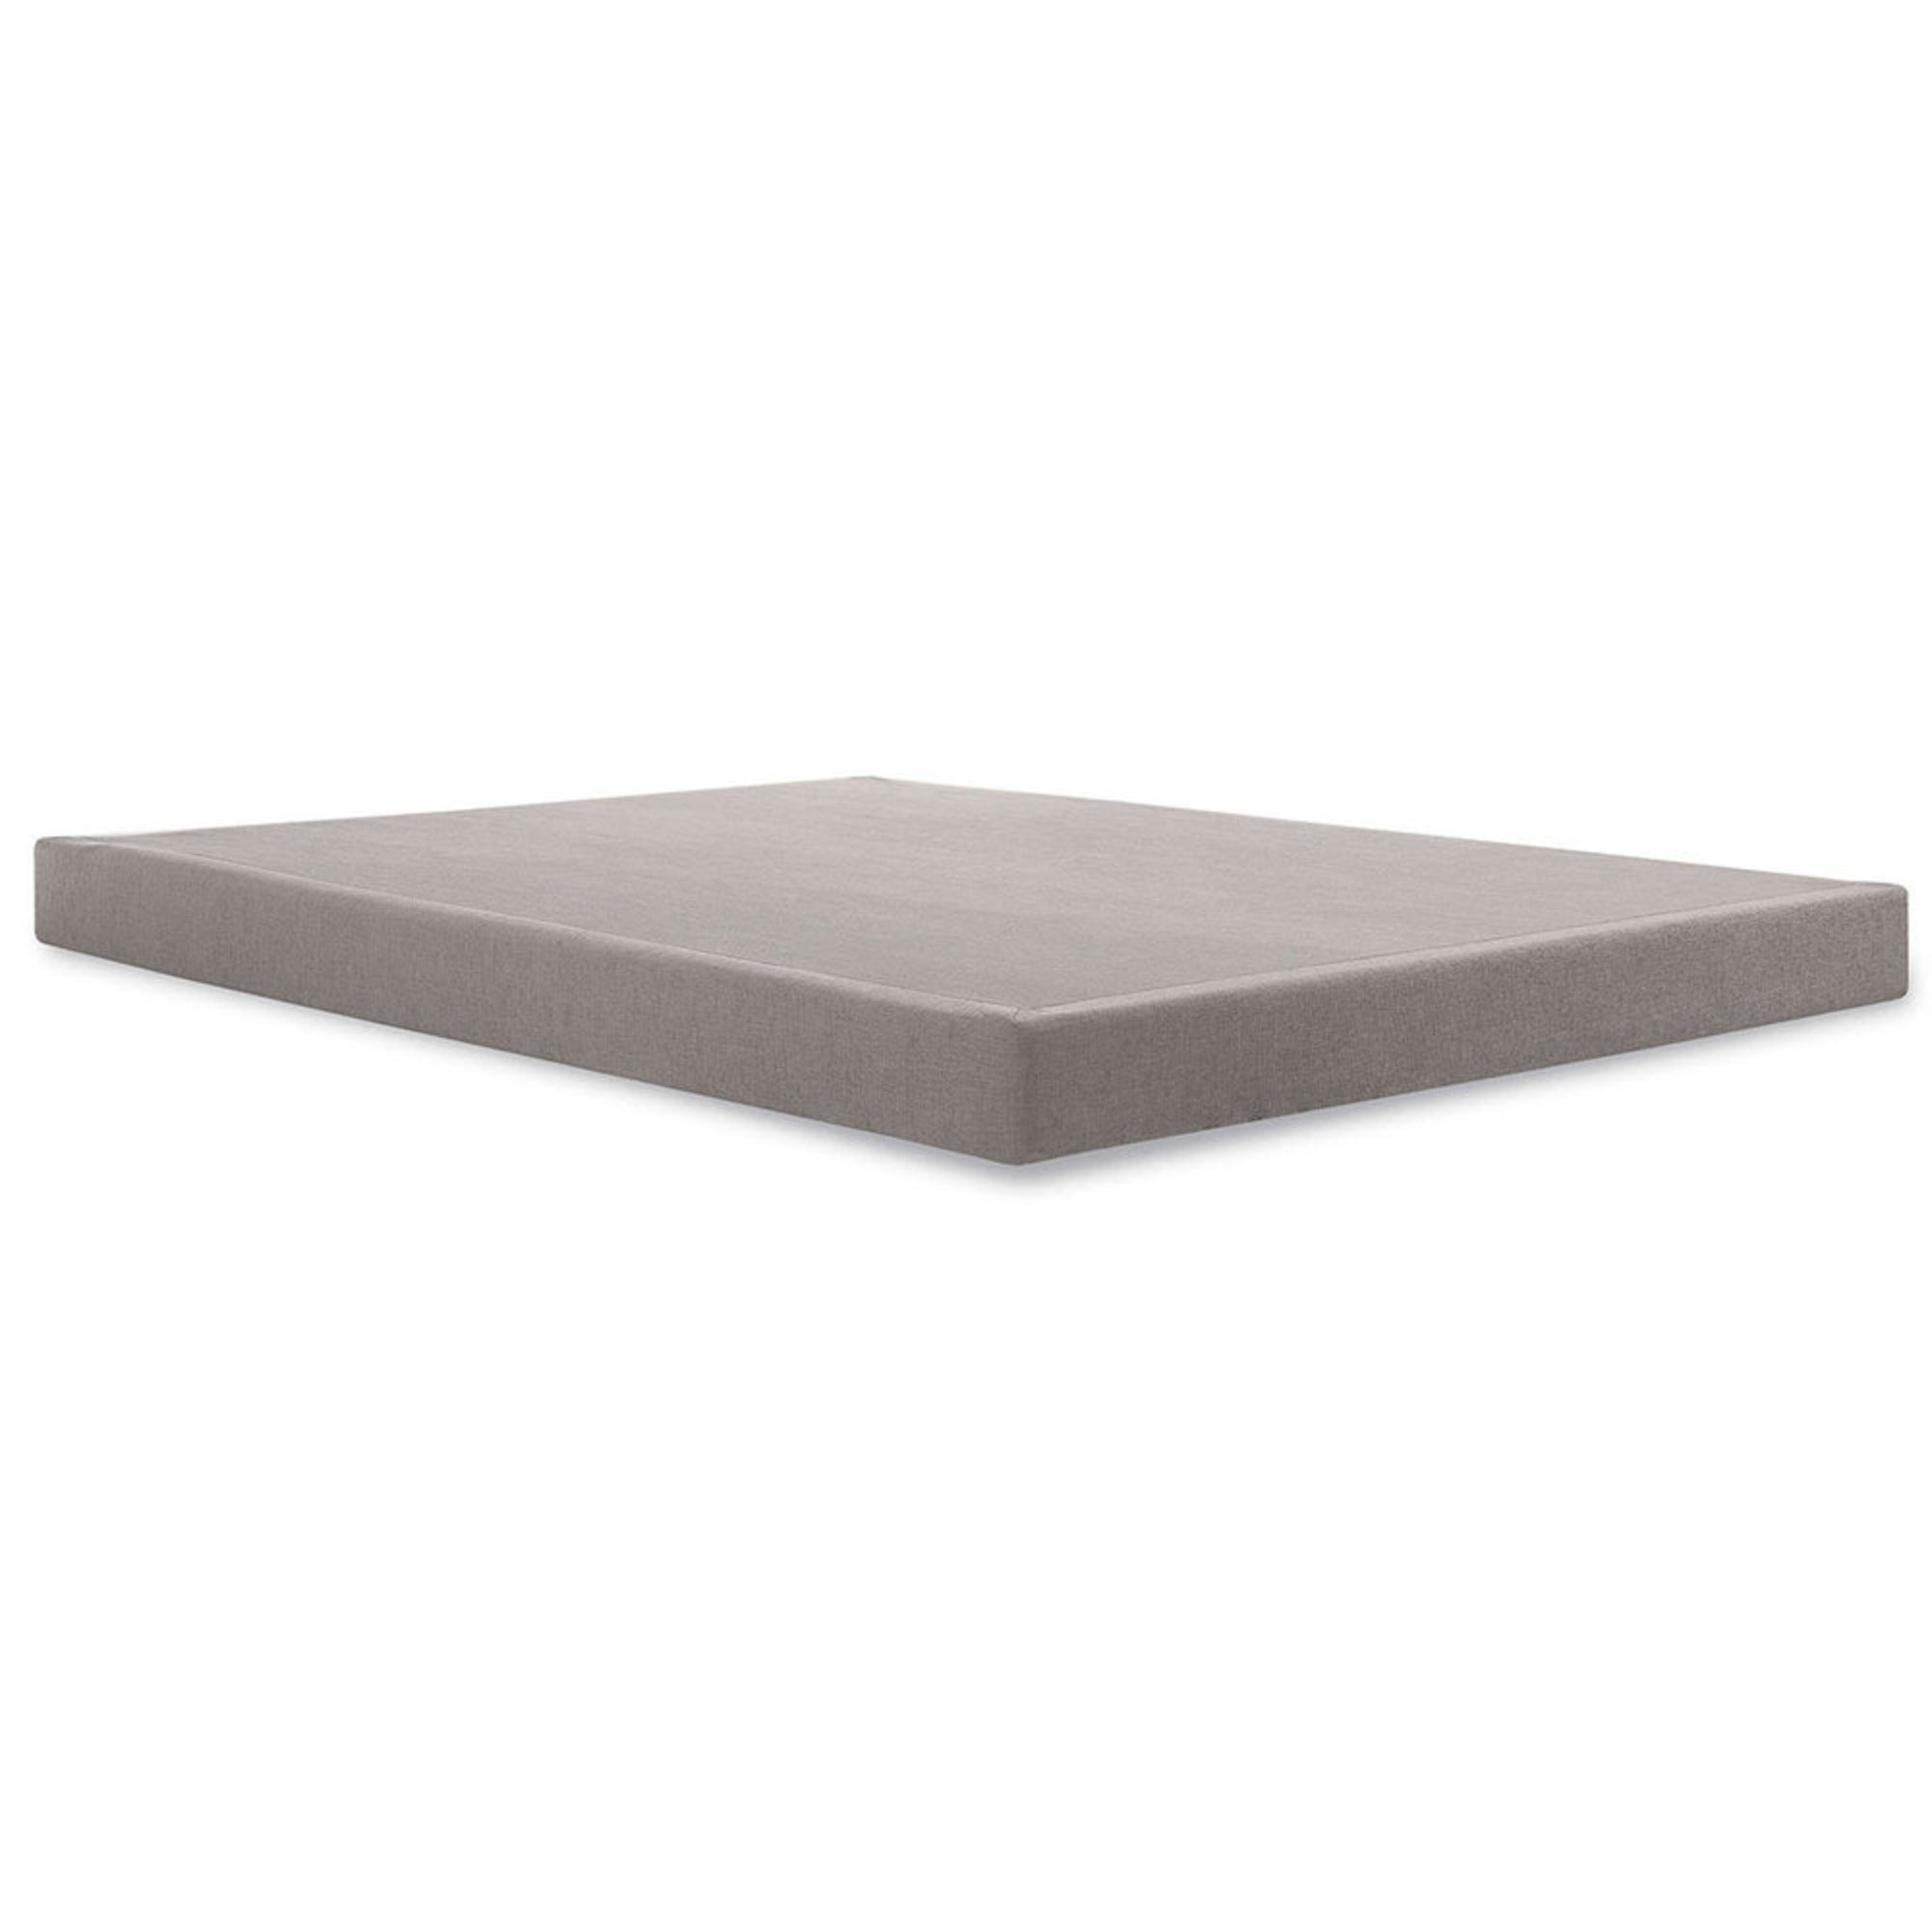 Tempur Pedic Low Profile Foundation Twin Xl King Mattresses For The Home Shop Your Navy